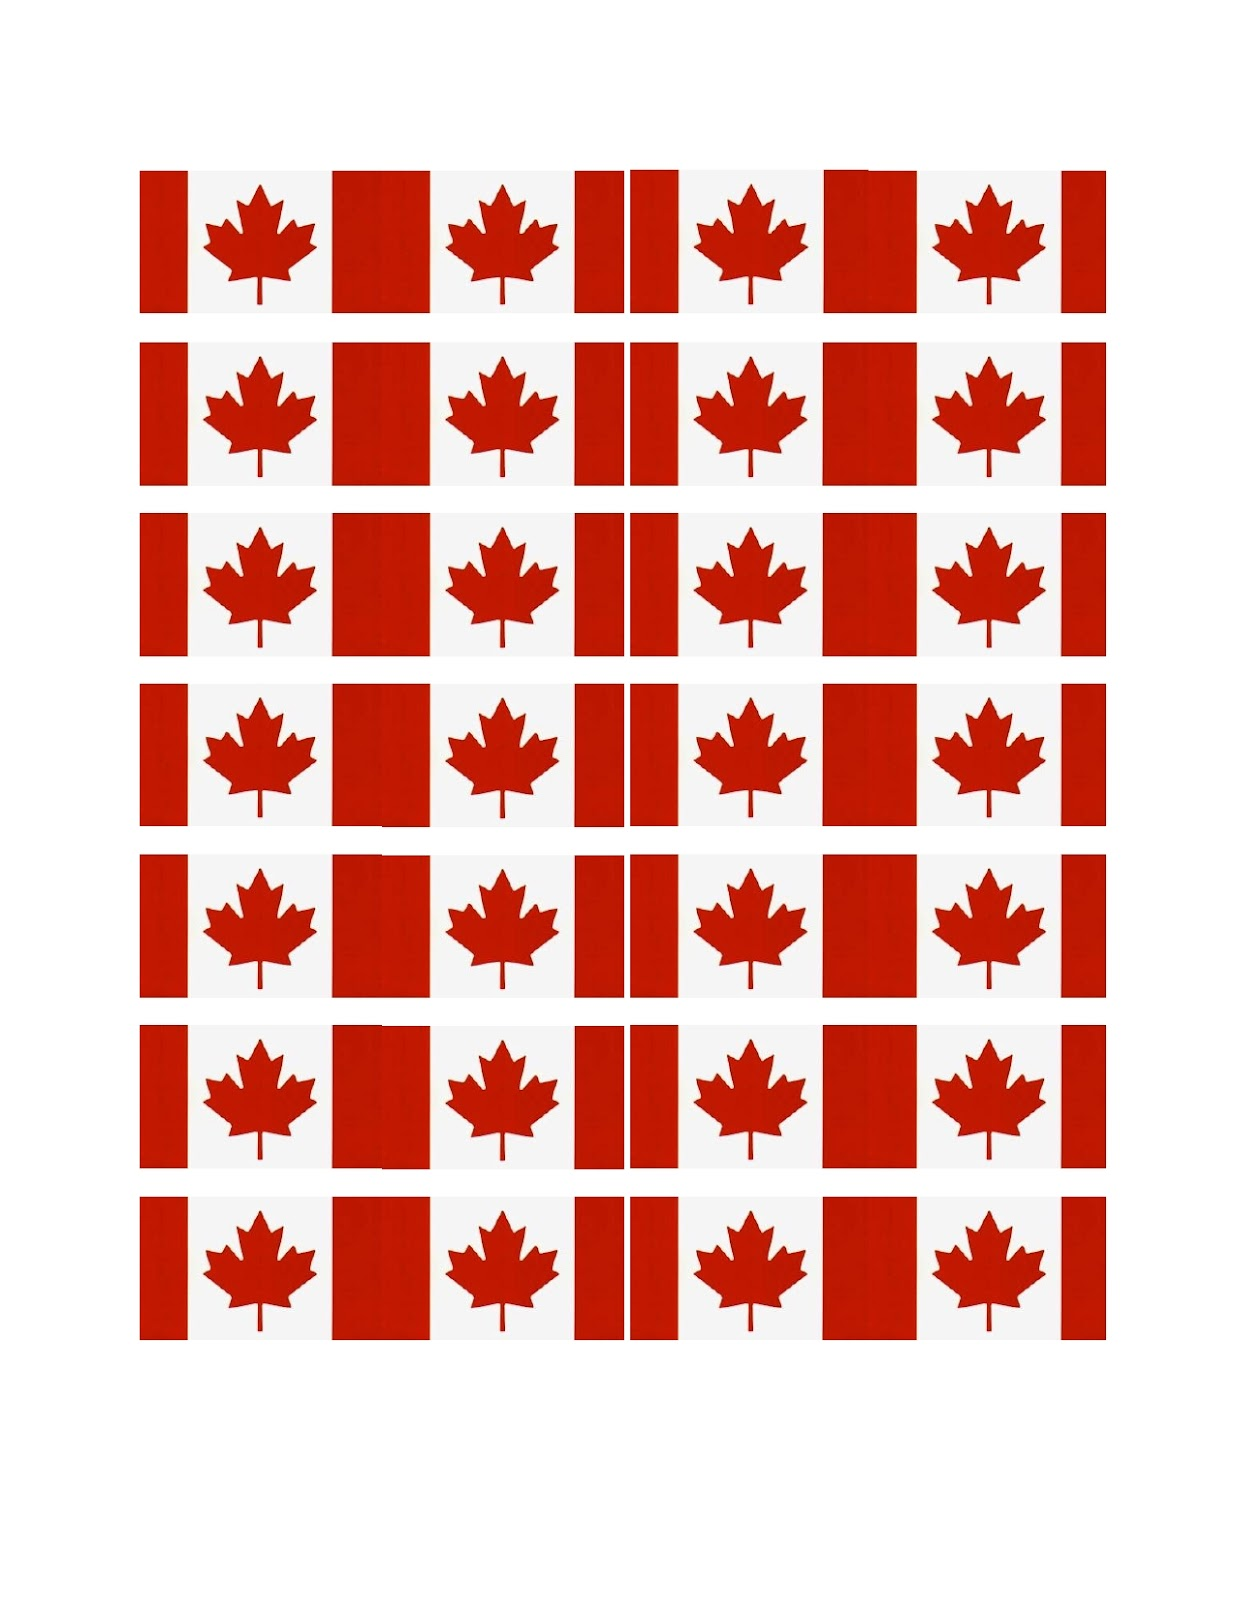 printable canadian flag coloring pages - photo#36